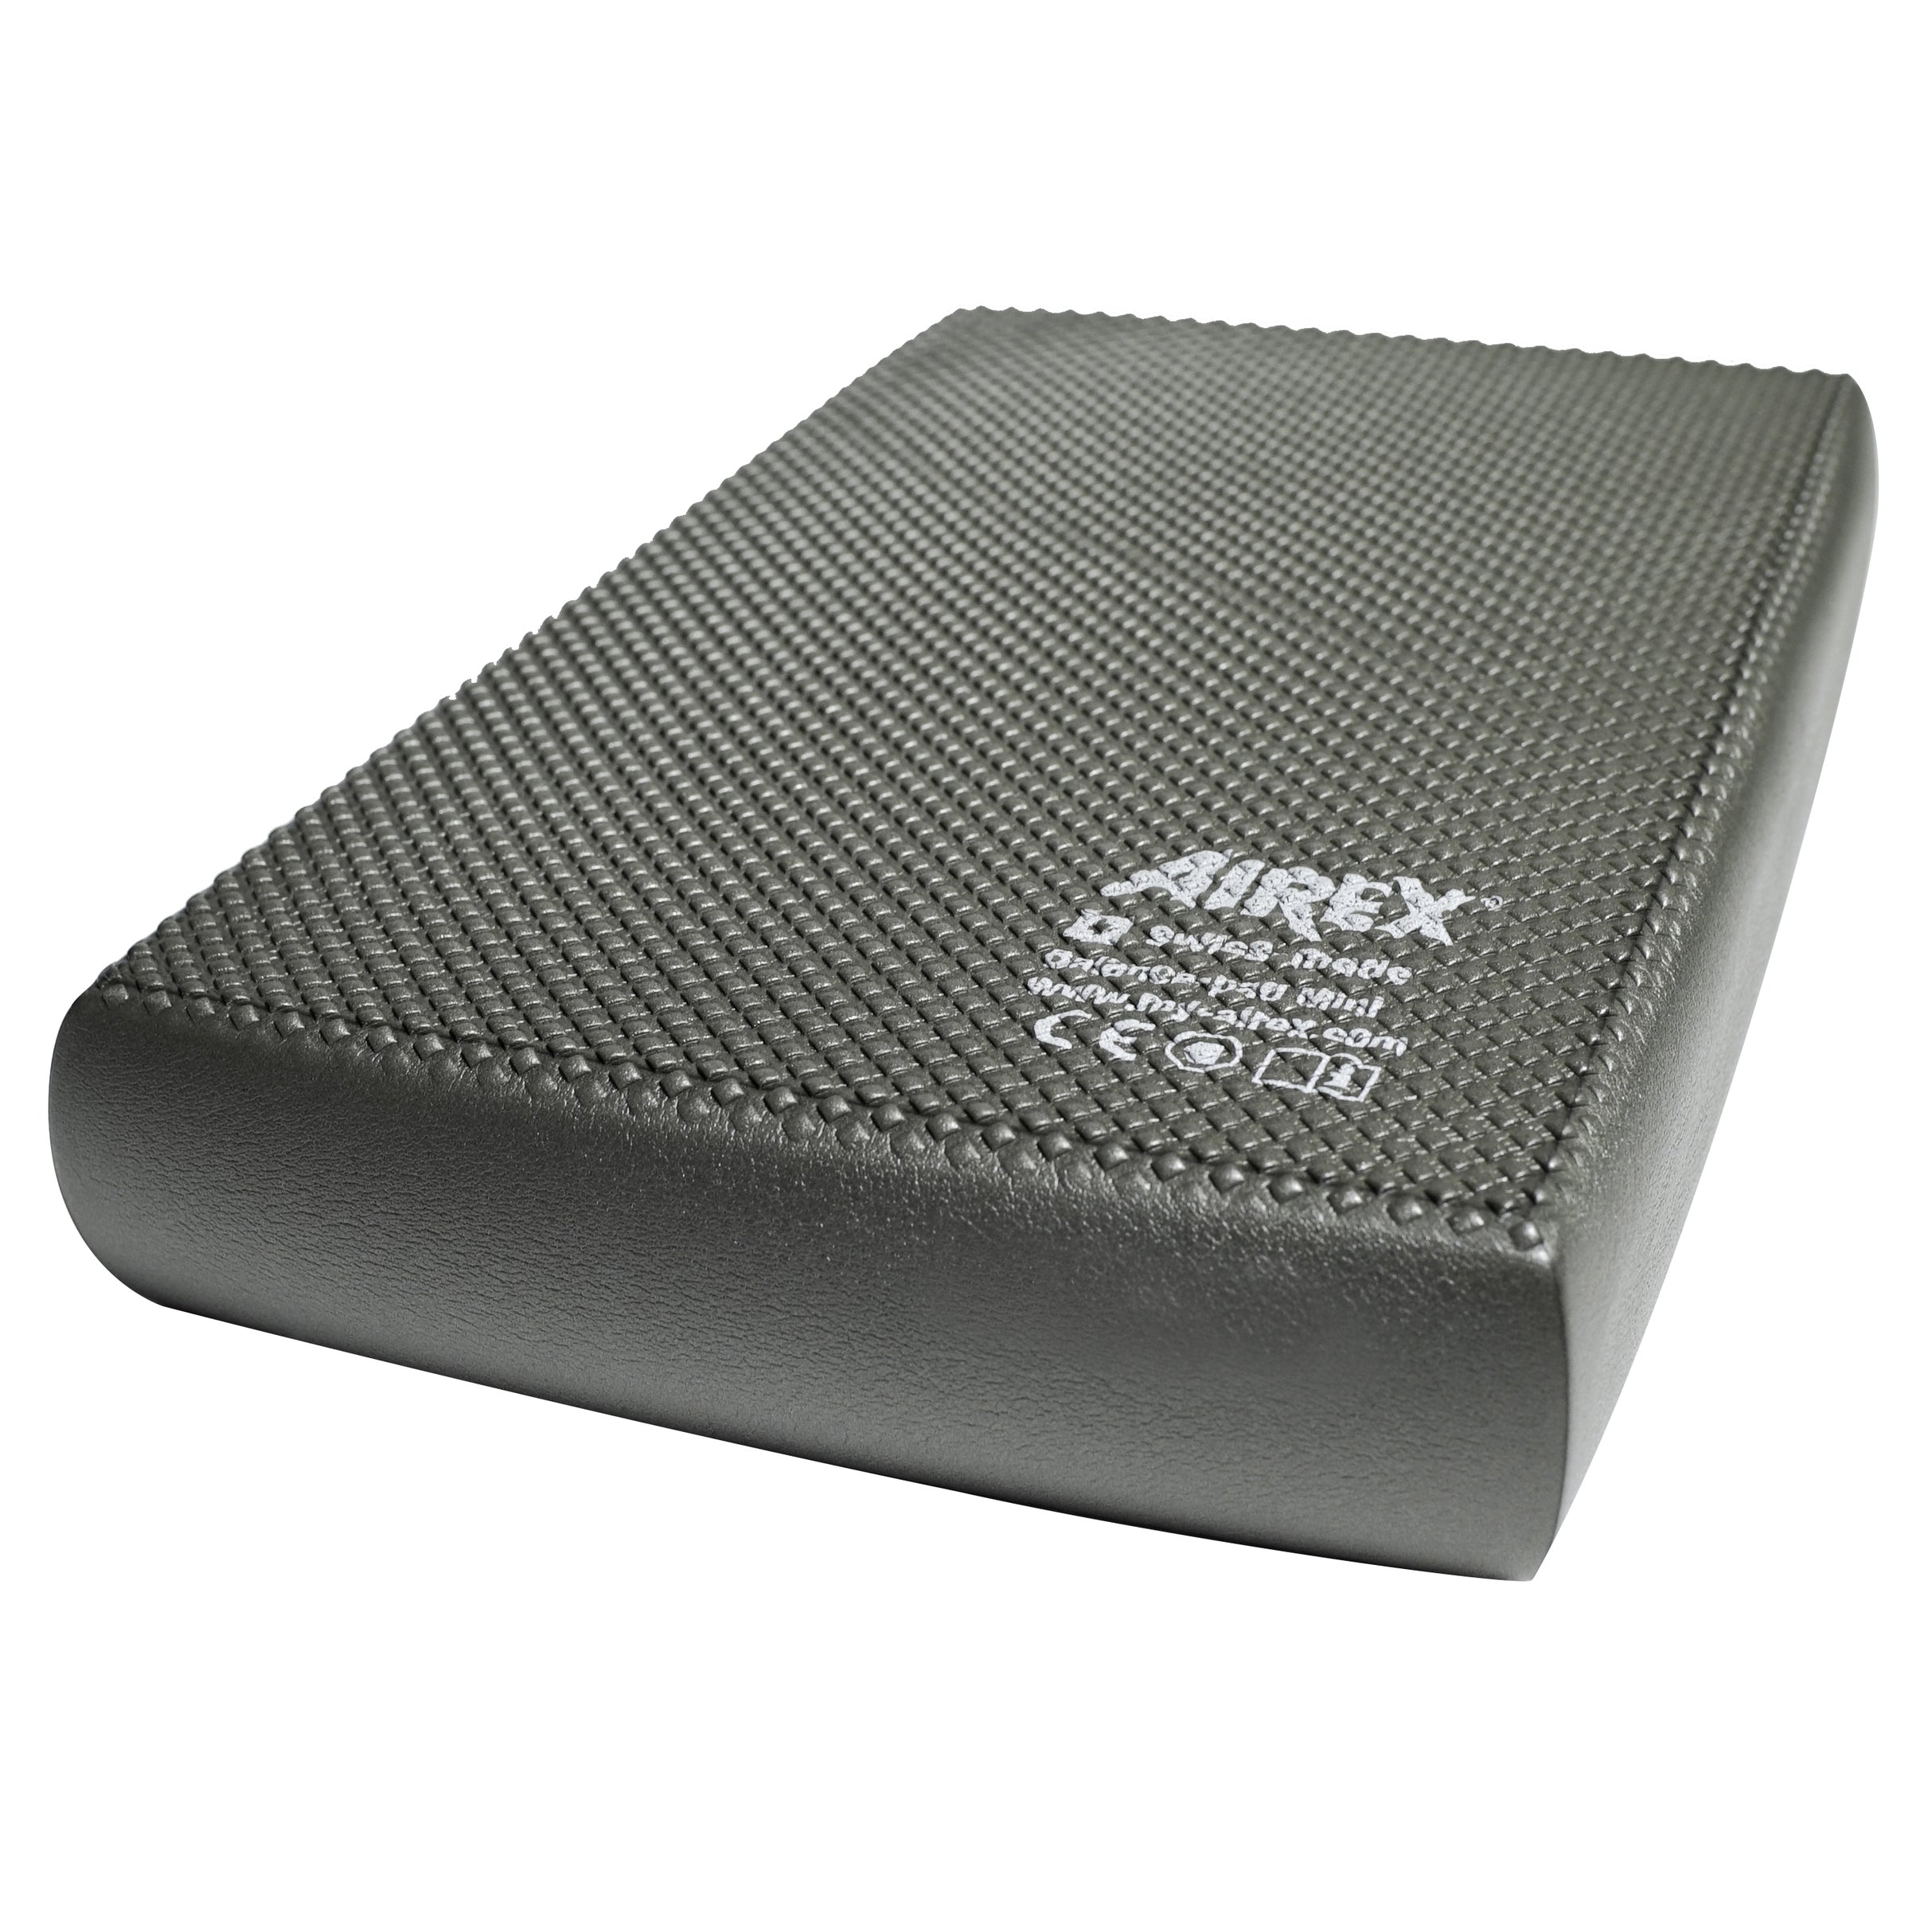 "The Airex® Balance Pad Mini has a smooth surface and small shape, making it ideal for single-handed or one-legged exercises. Due to the yielding foam, you will constantly be challenged to maintain balance and stabilize your joints, improving over time and building strength. This pad is also great for balance, mobility, standing stability and motor-skill training. Airex® Balance Pad Mini Features: Smooth surface and small design Ideal for single-handed and one-legged exercises Improves joint stability and builds strength Dimensions: Approximately 16.14""L x 9.84""W x 2.36""H (6cm thick) Care instructions: Spot treat with a soft brush and warm soapy water. Air dry. Do not use solvents, stain remover, hot steam or water. Best stored flat. To avoid pressure, do not store any objects on top of them. Avoid storing in direct sunlight for long periods of time for the mat will become brittle and stiff over time."